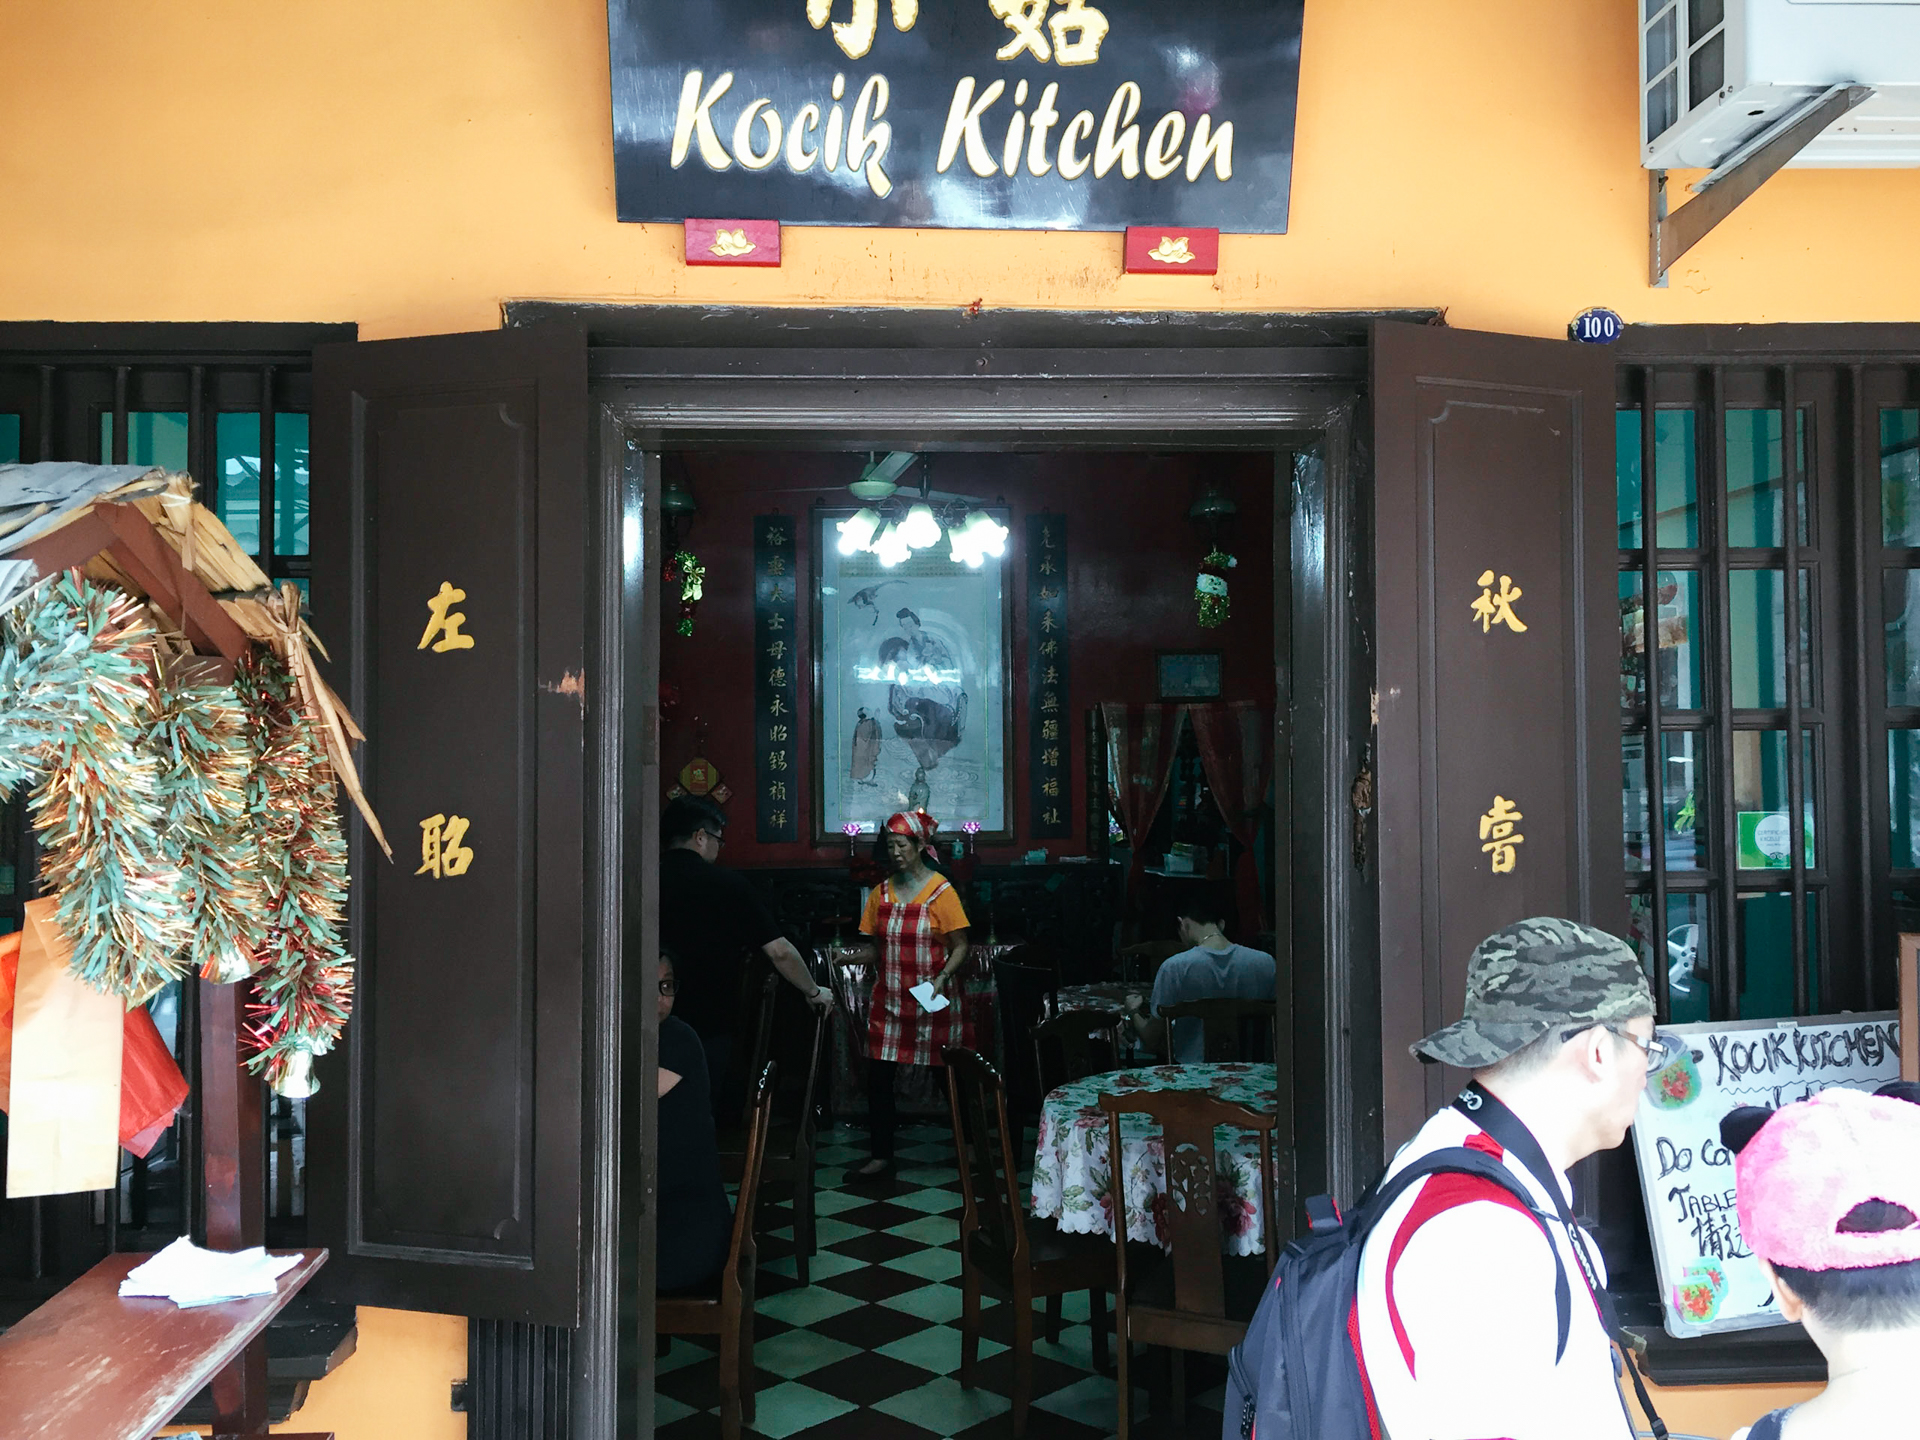 Kocik Kitchen